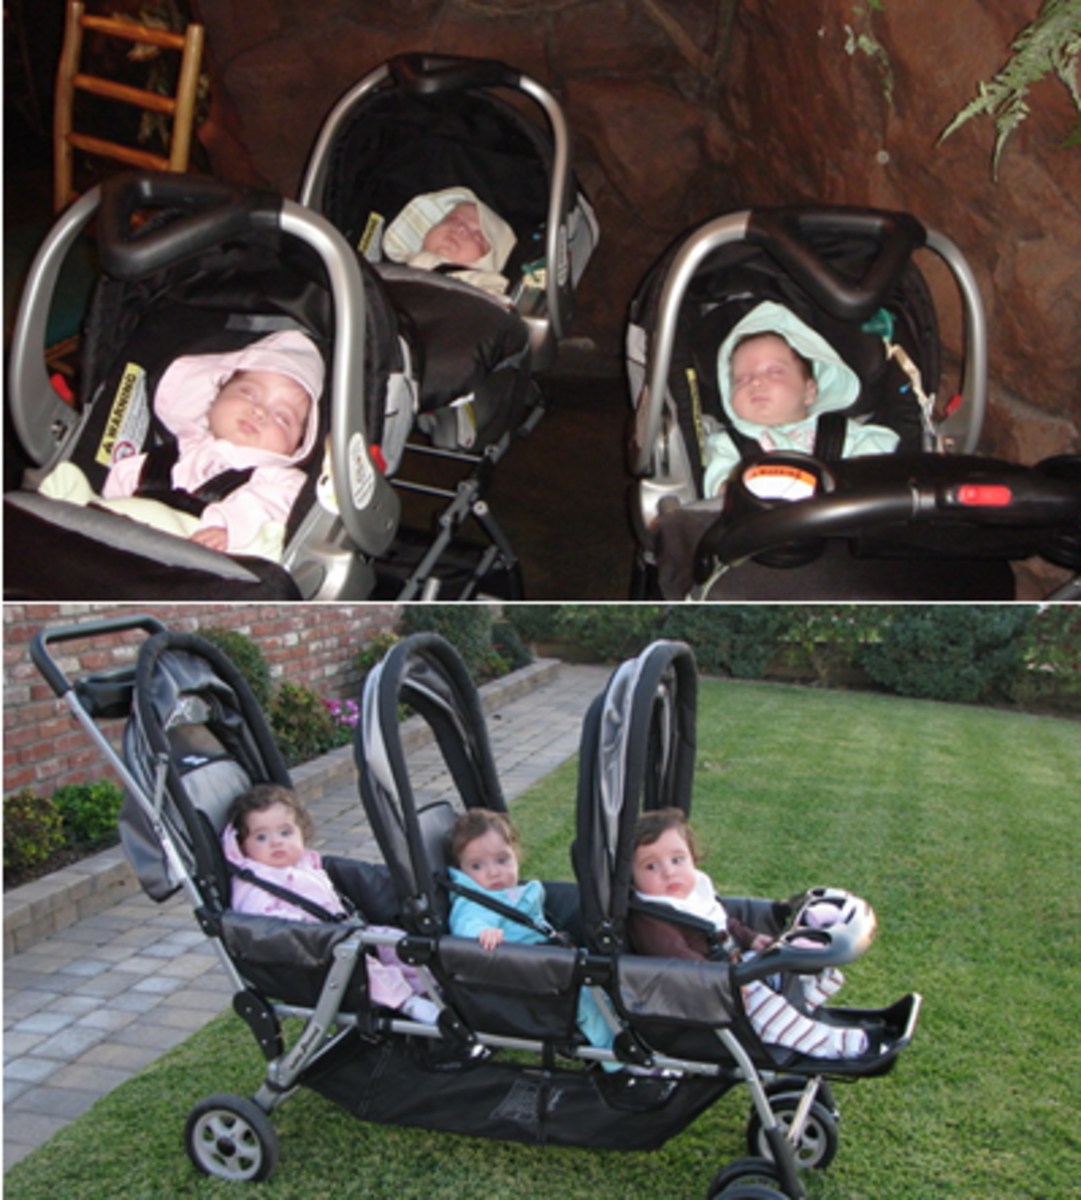 My Two choices for triplets strollers